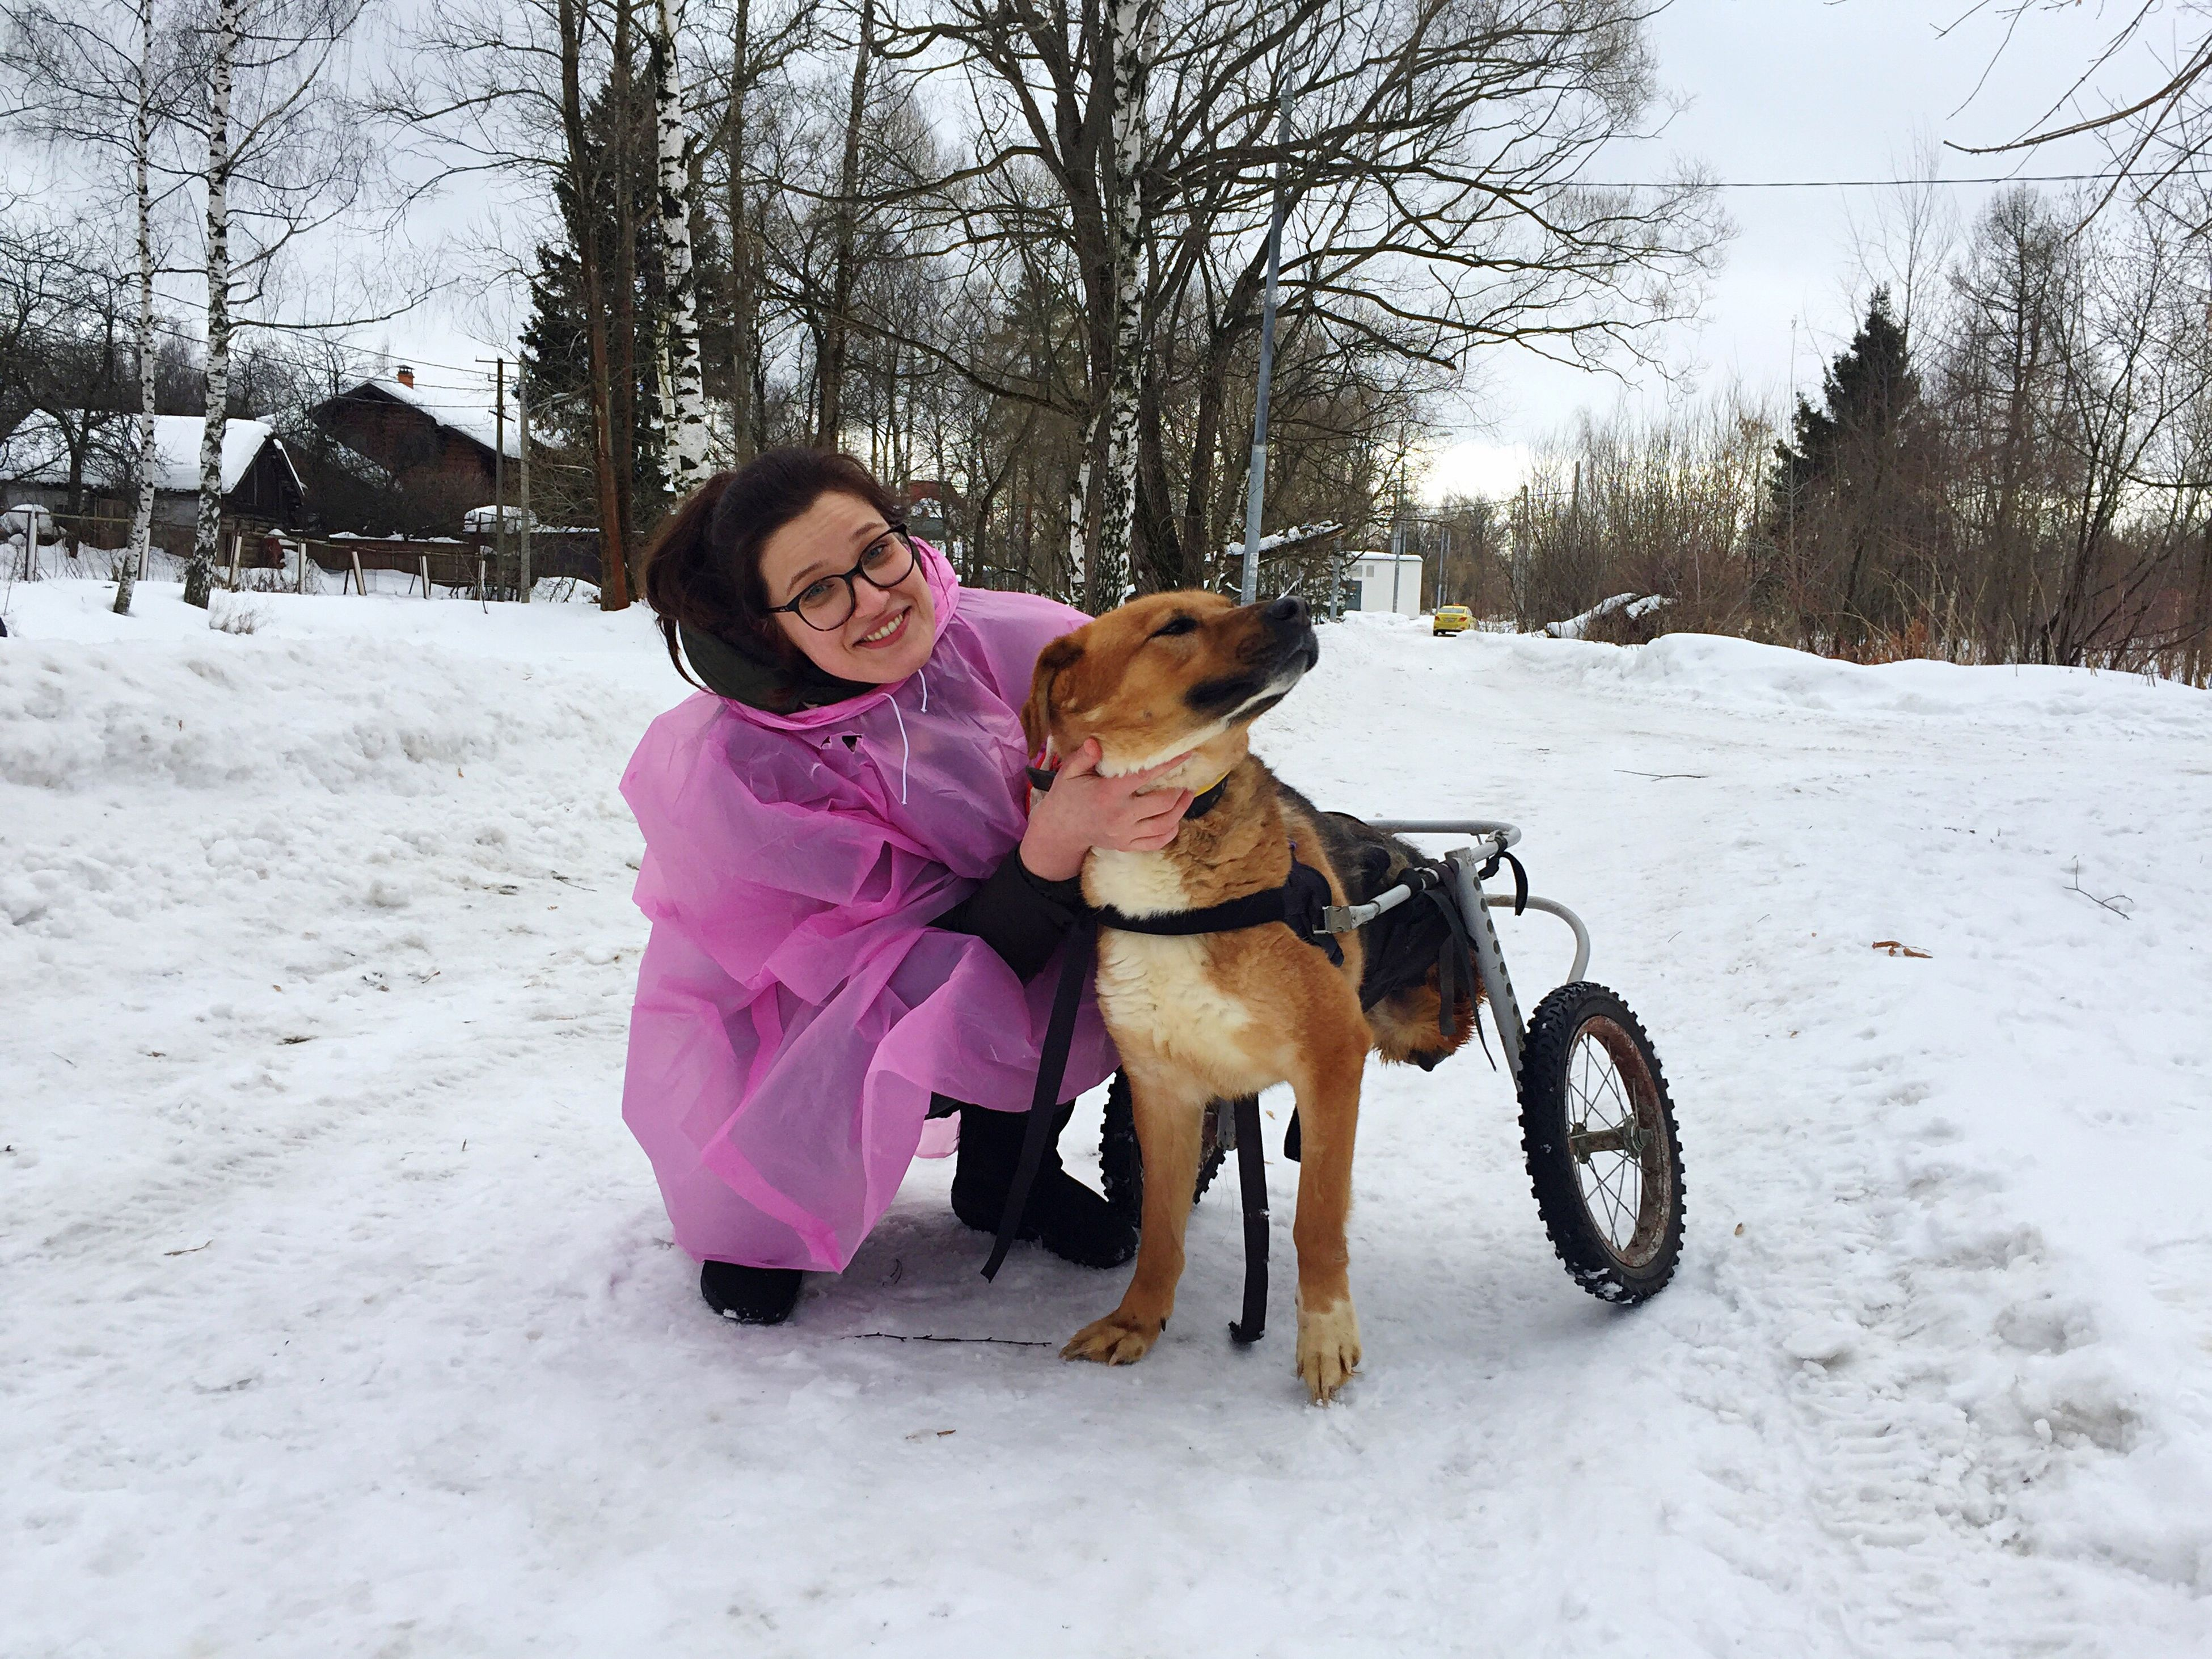 dog, pets, full length, one animal, friendship, animal themes, domestic animals, loyalty, cold temperature, leisure activity, pink color, people, sitting, tree, winter, snow, day, bonding, eyeglasses, outdoors, nature, mammal, adults only, adult